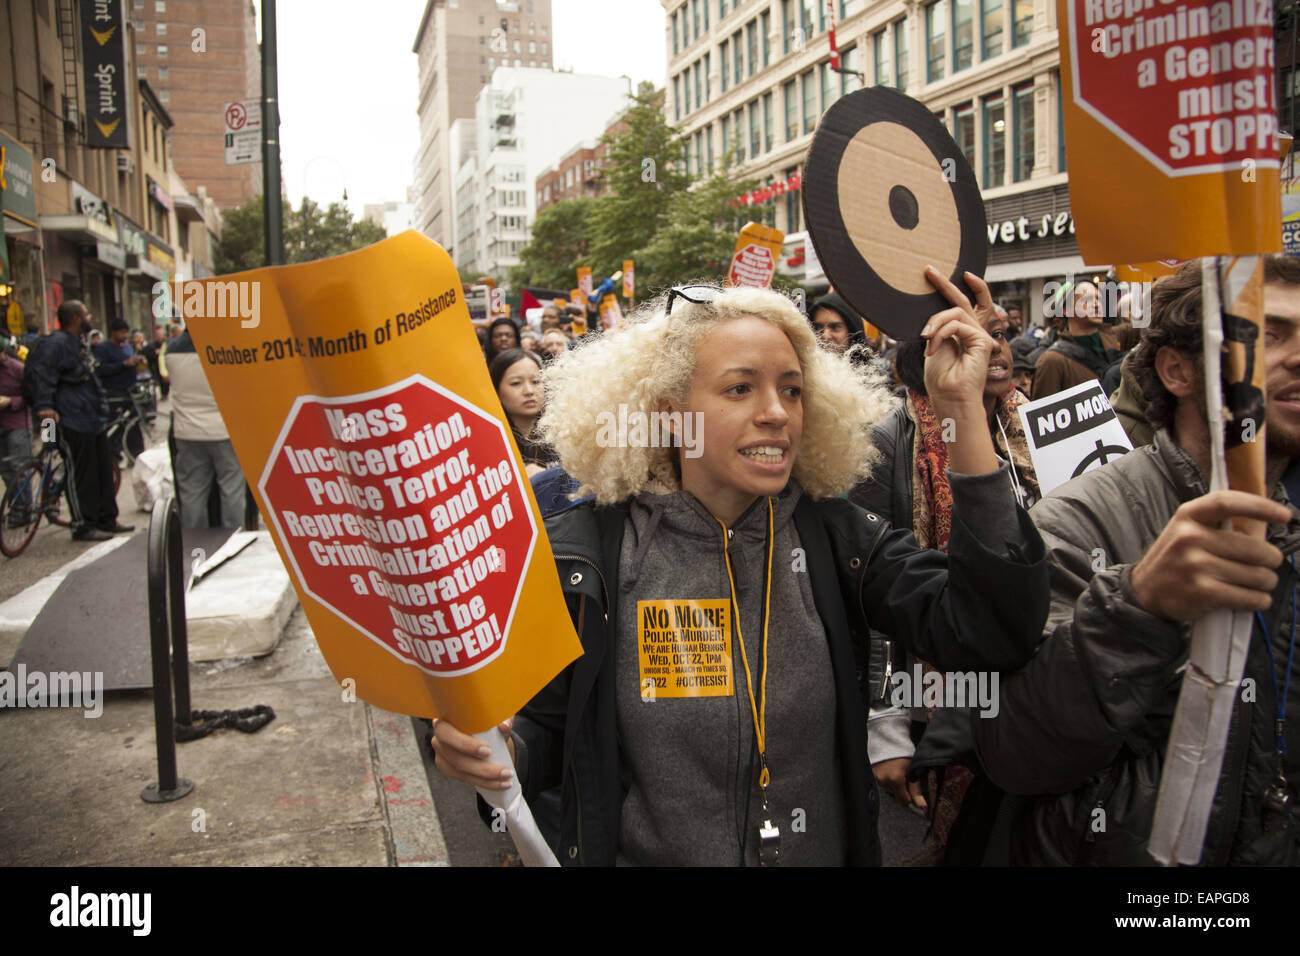 Nov 22nd yearly demonstration against police brutality and the killing of unarmed civilians in the USA. - Stock Image